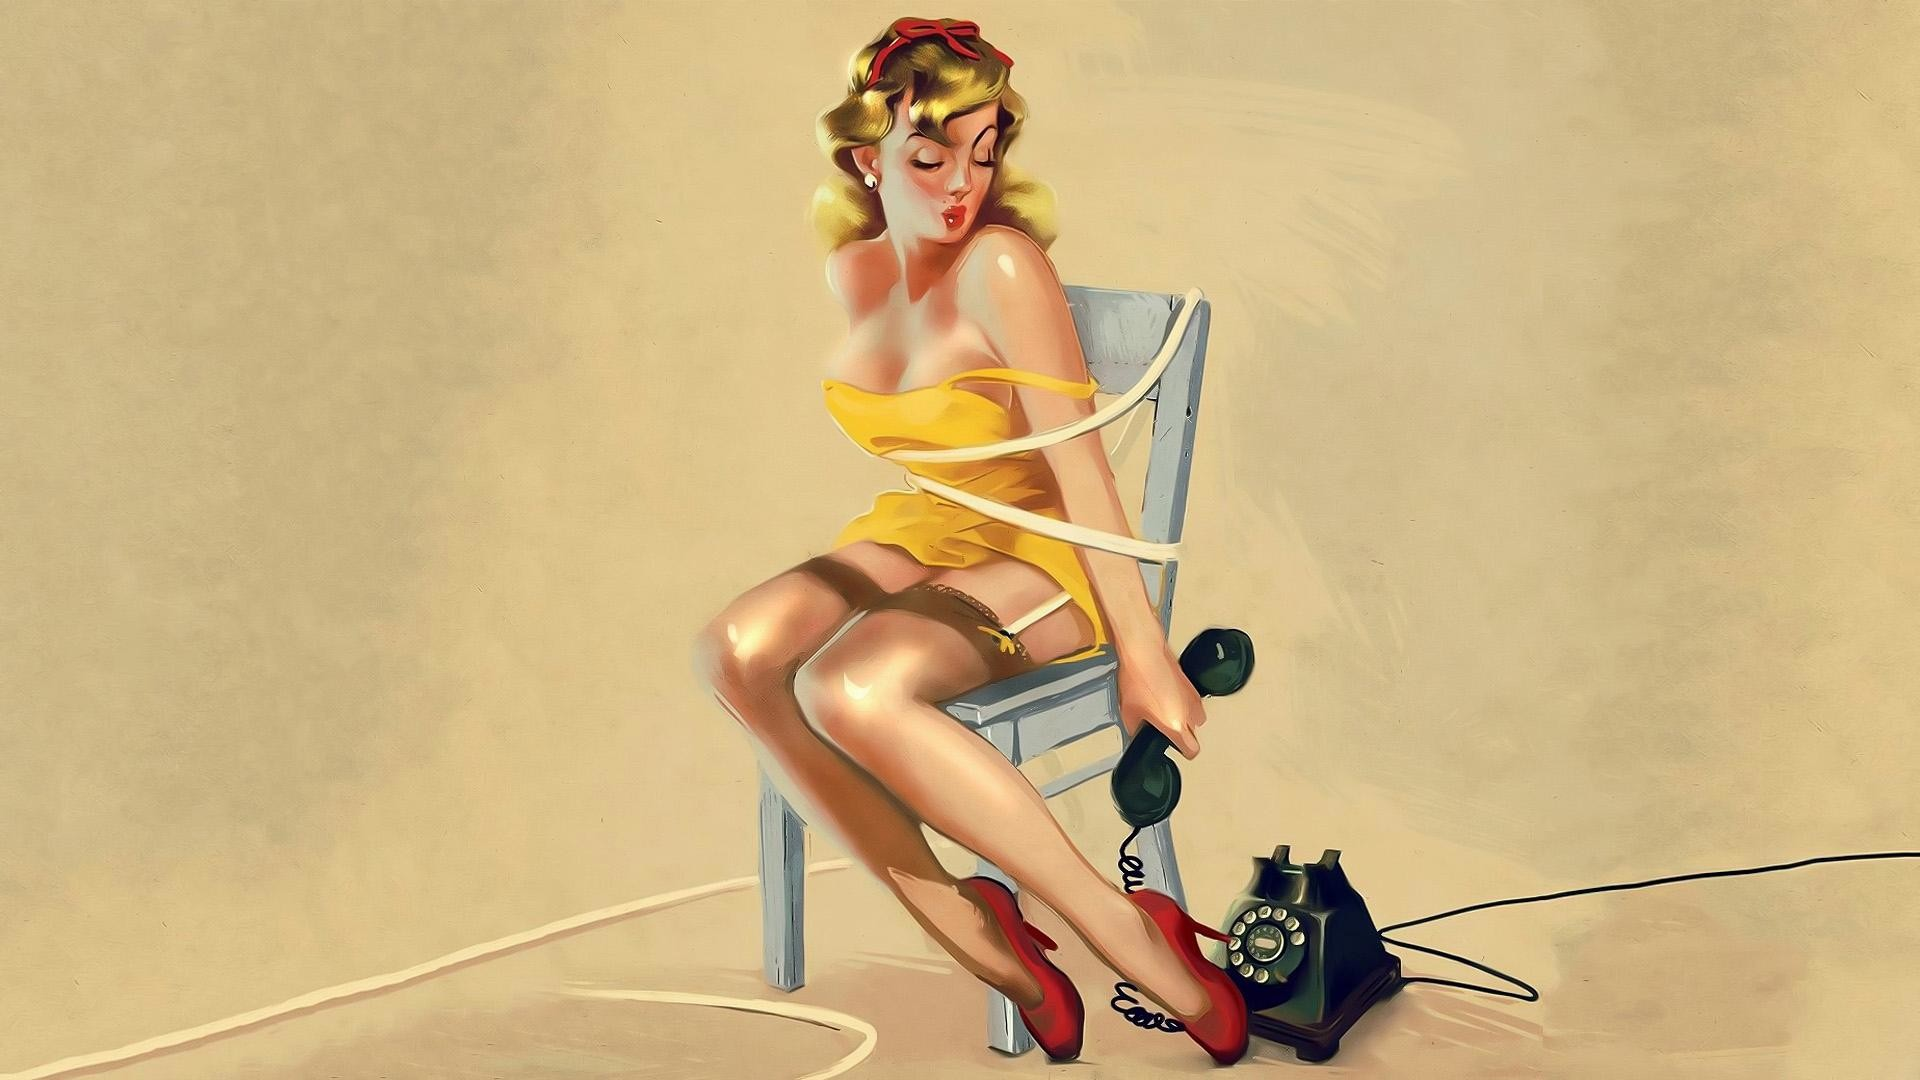 Pin Up Girls Wallpaper Posted By Michelle Anderson